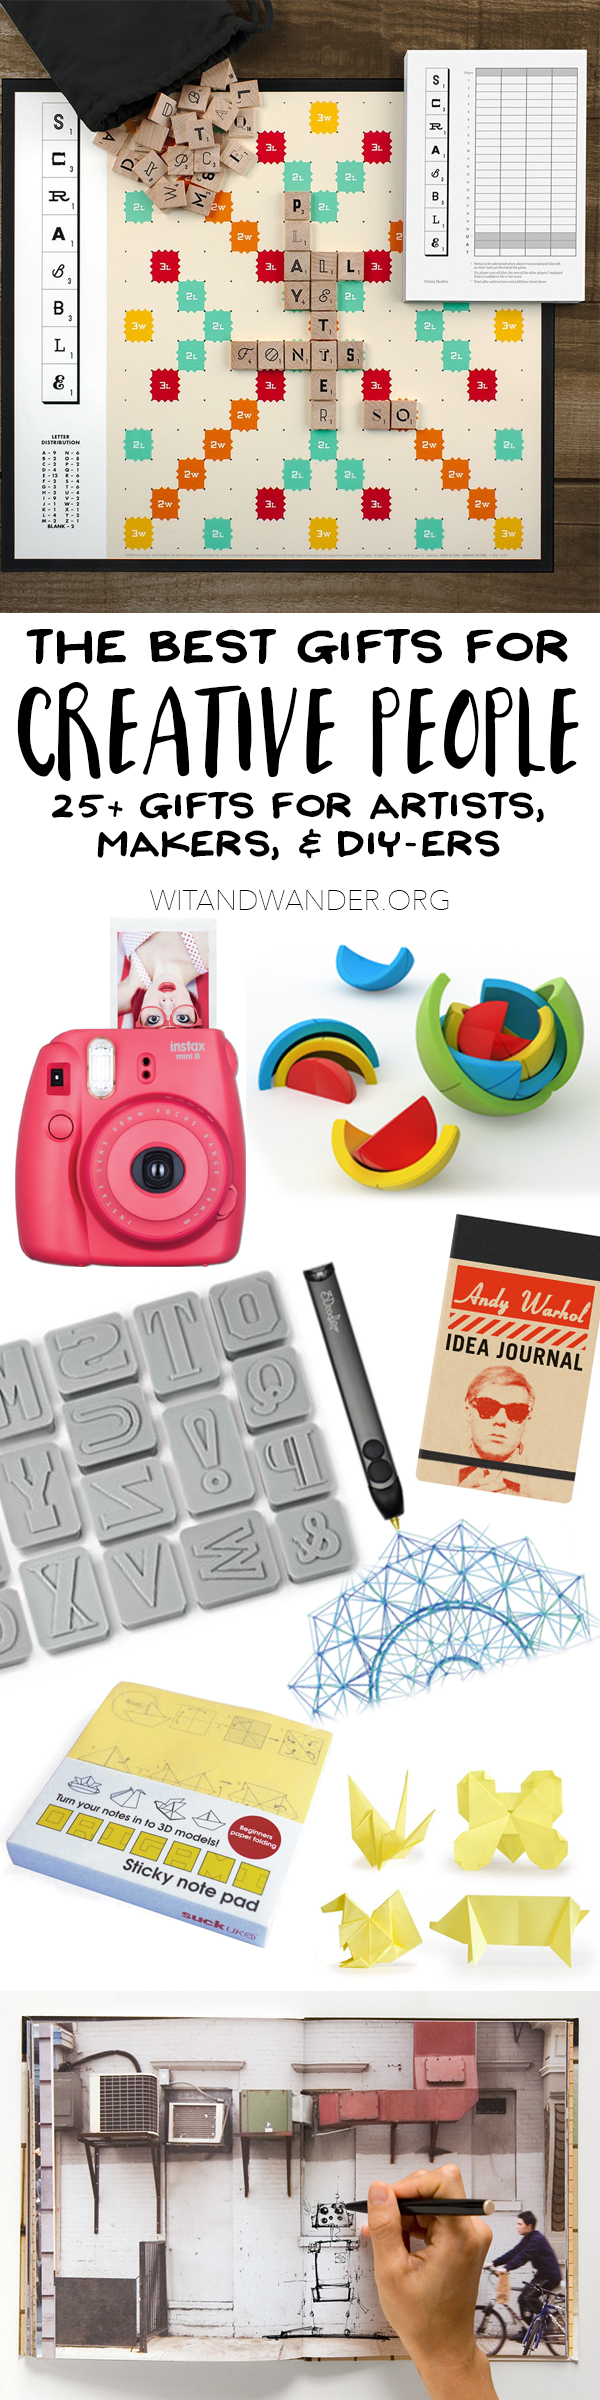 the absolute best gifts for creative people: artists, makers, and